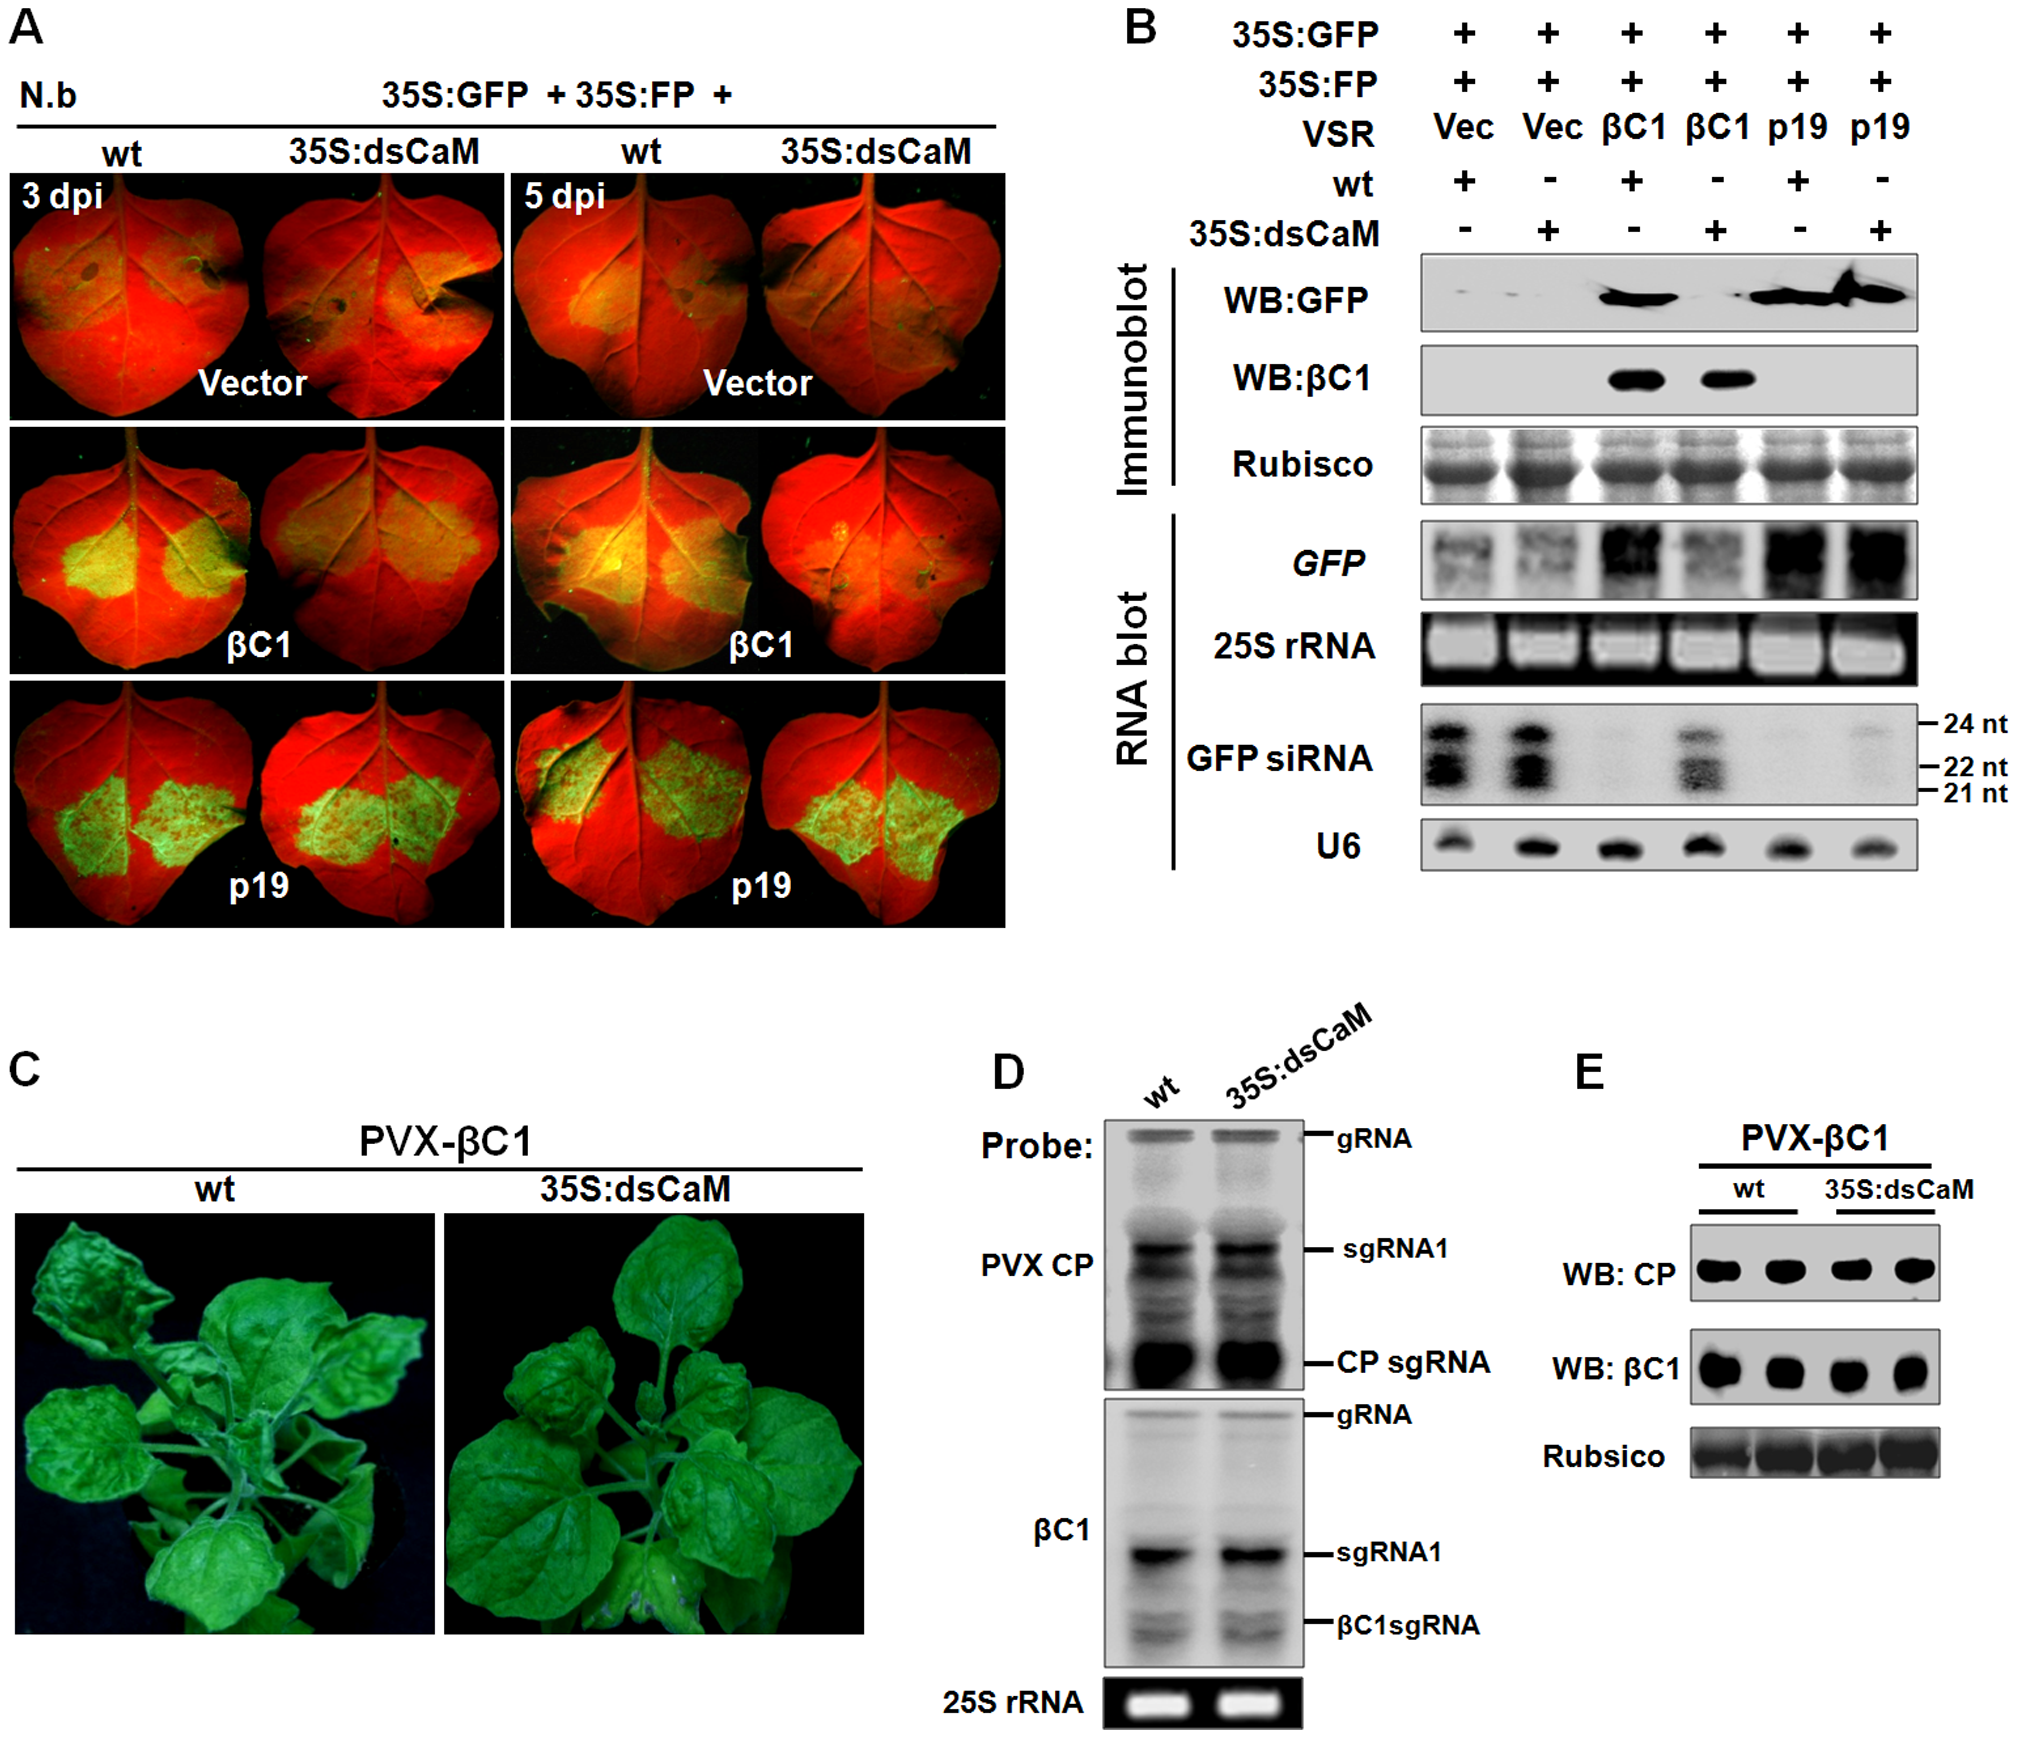 <i>Nbrgs-CaM</i> is genetically required for the functions of βC1 in PTGS suppression and symptom modulation.